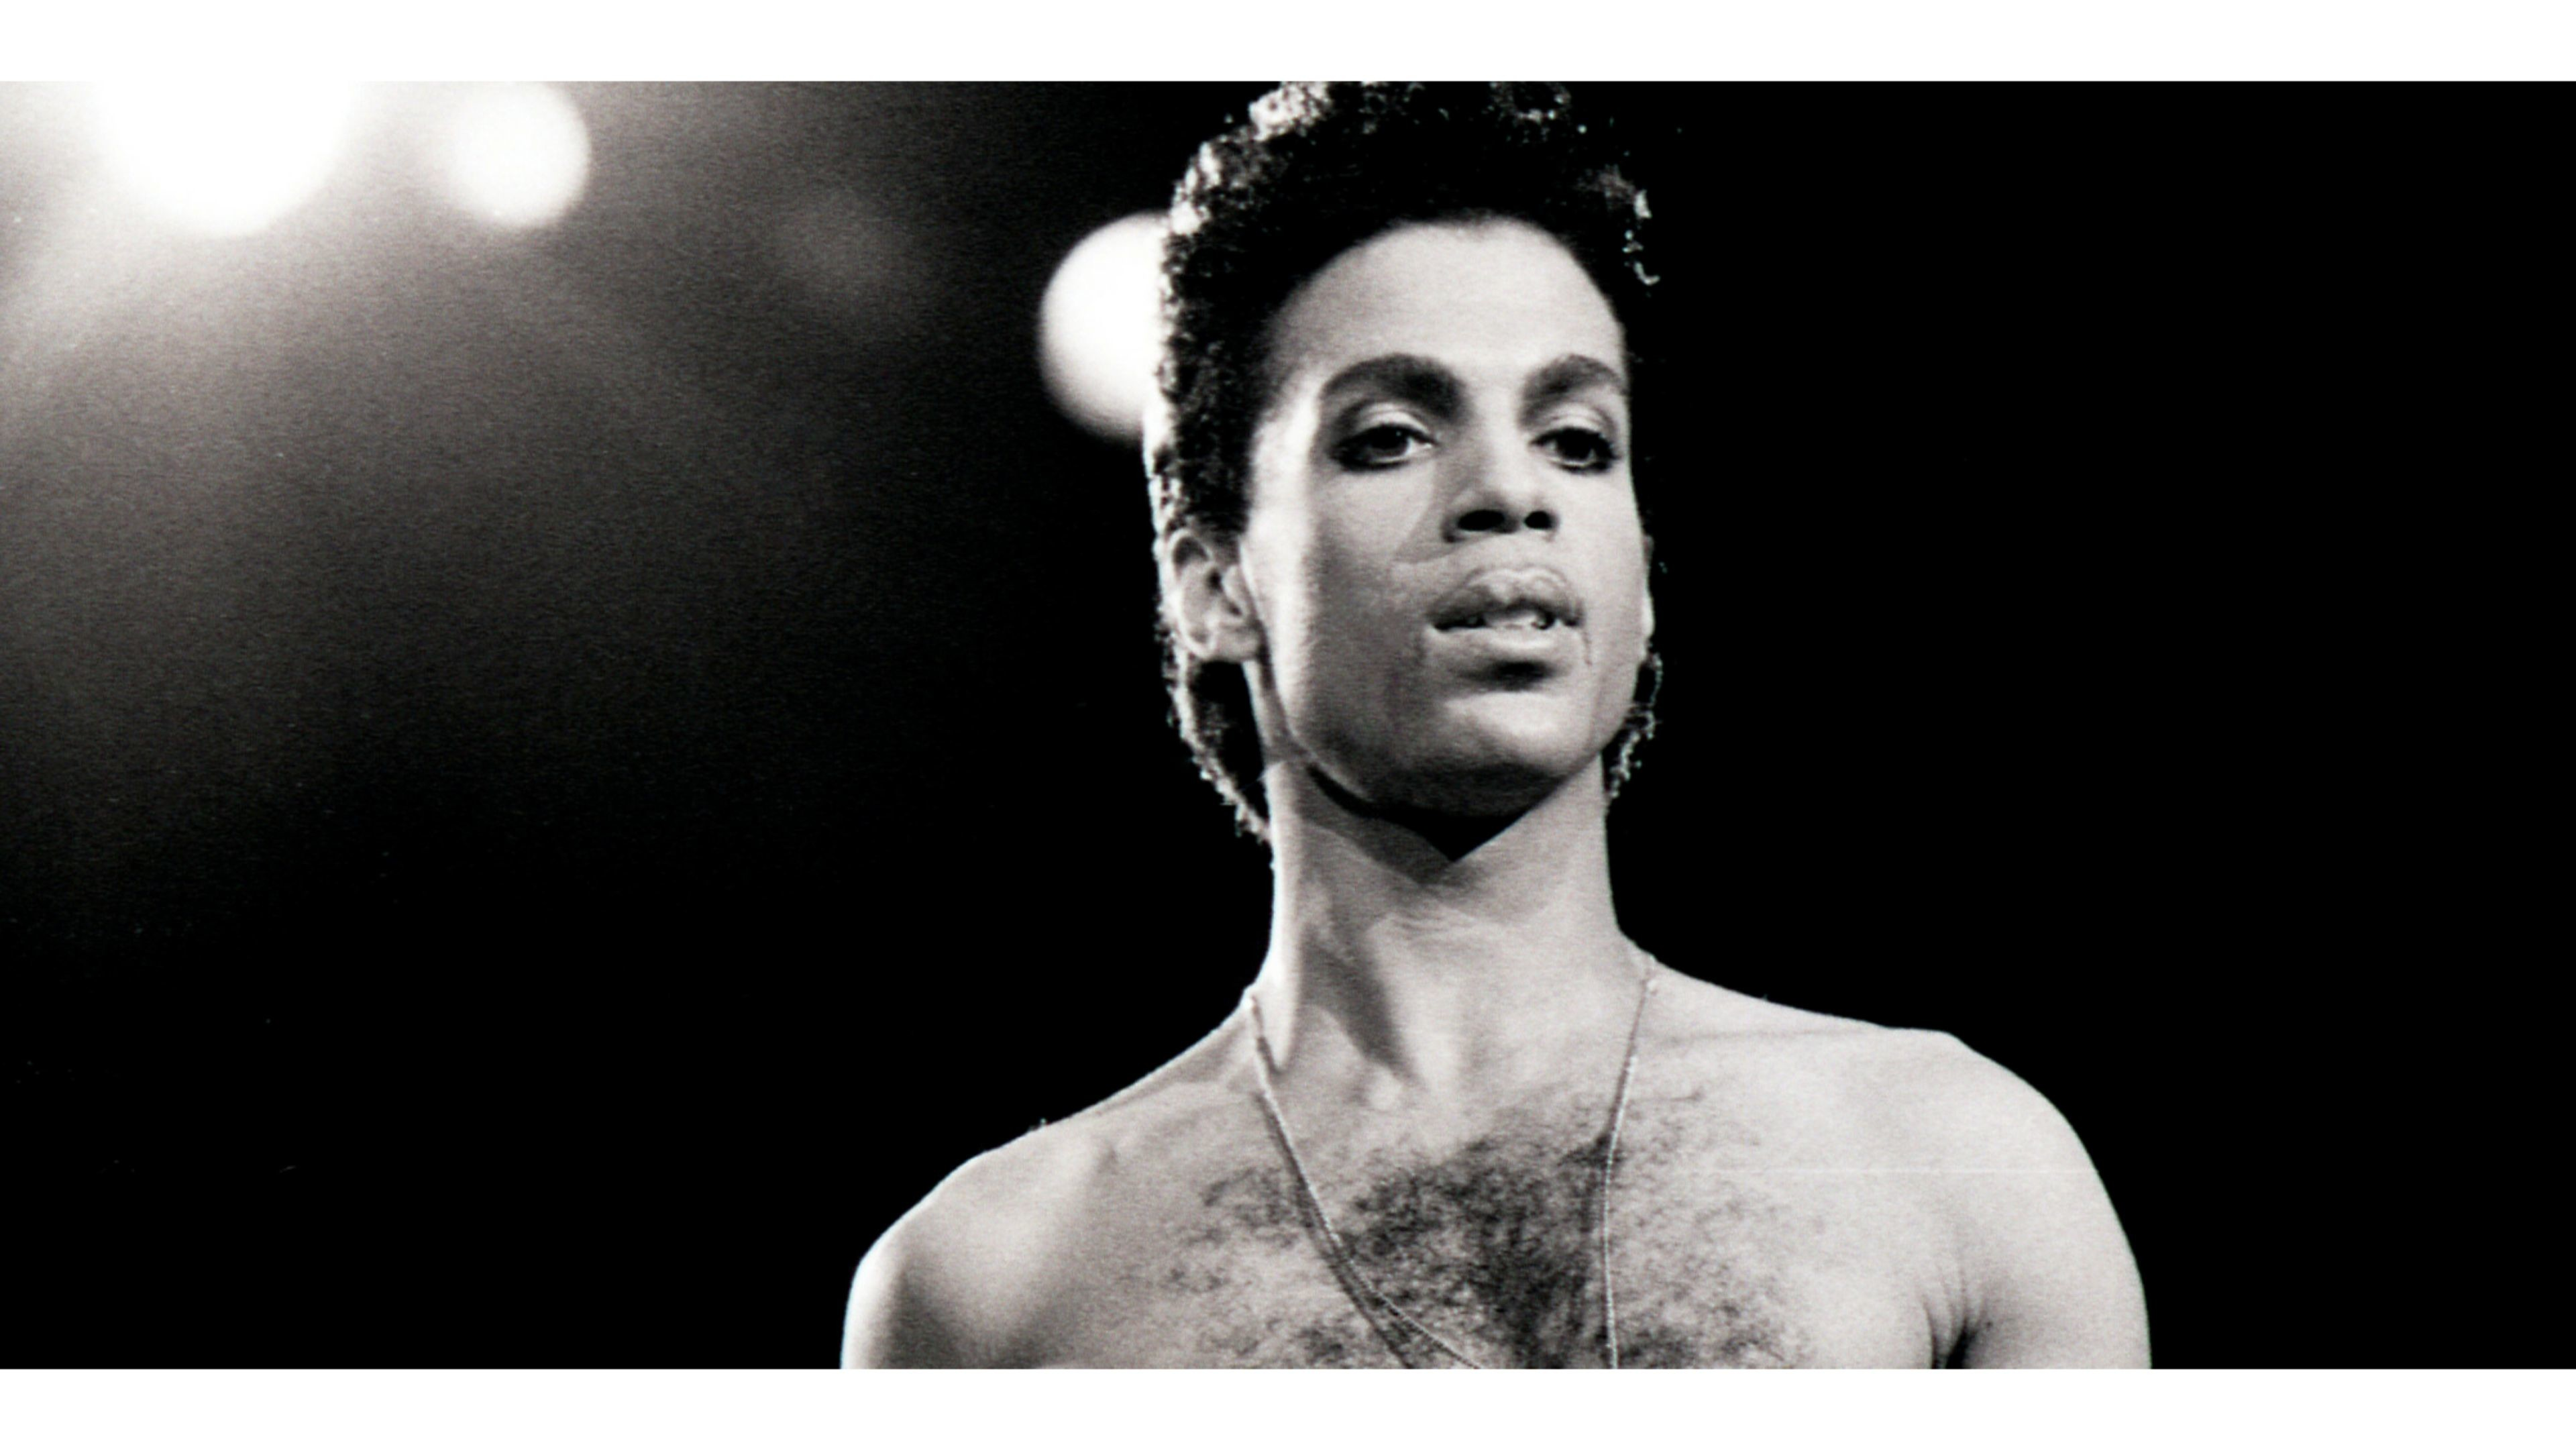 3840x2160 Black and White 2016 Prince 4K Wallpapers